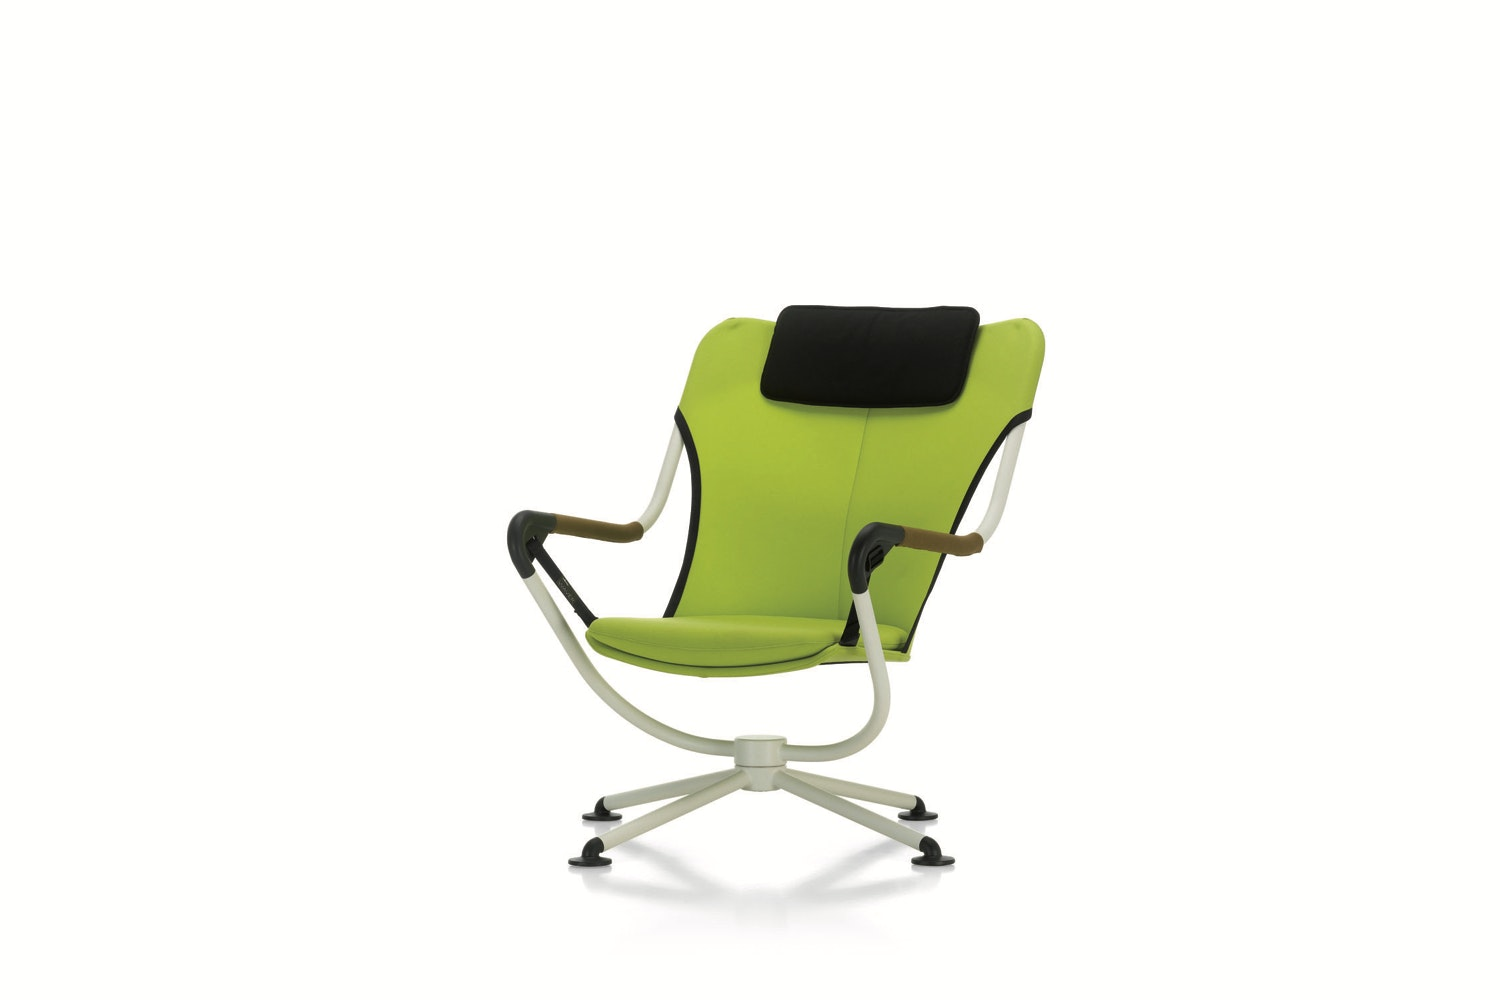 Waver Armchair by Konstantin Grcic for Vitra